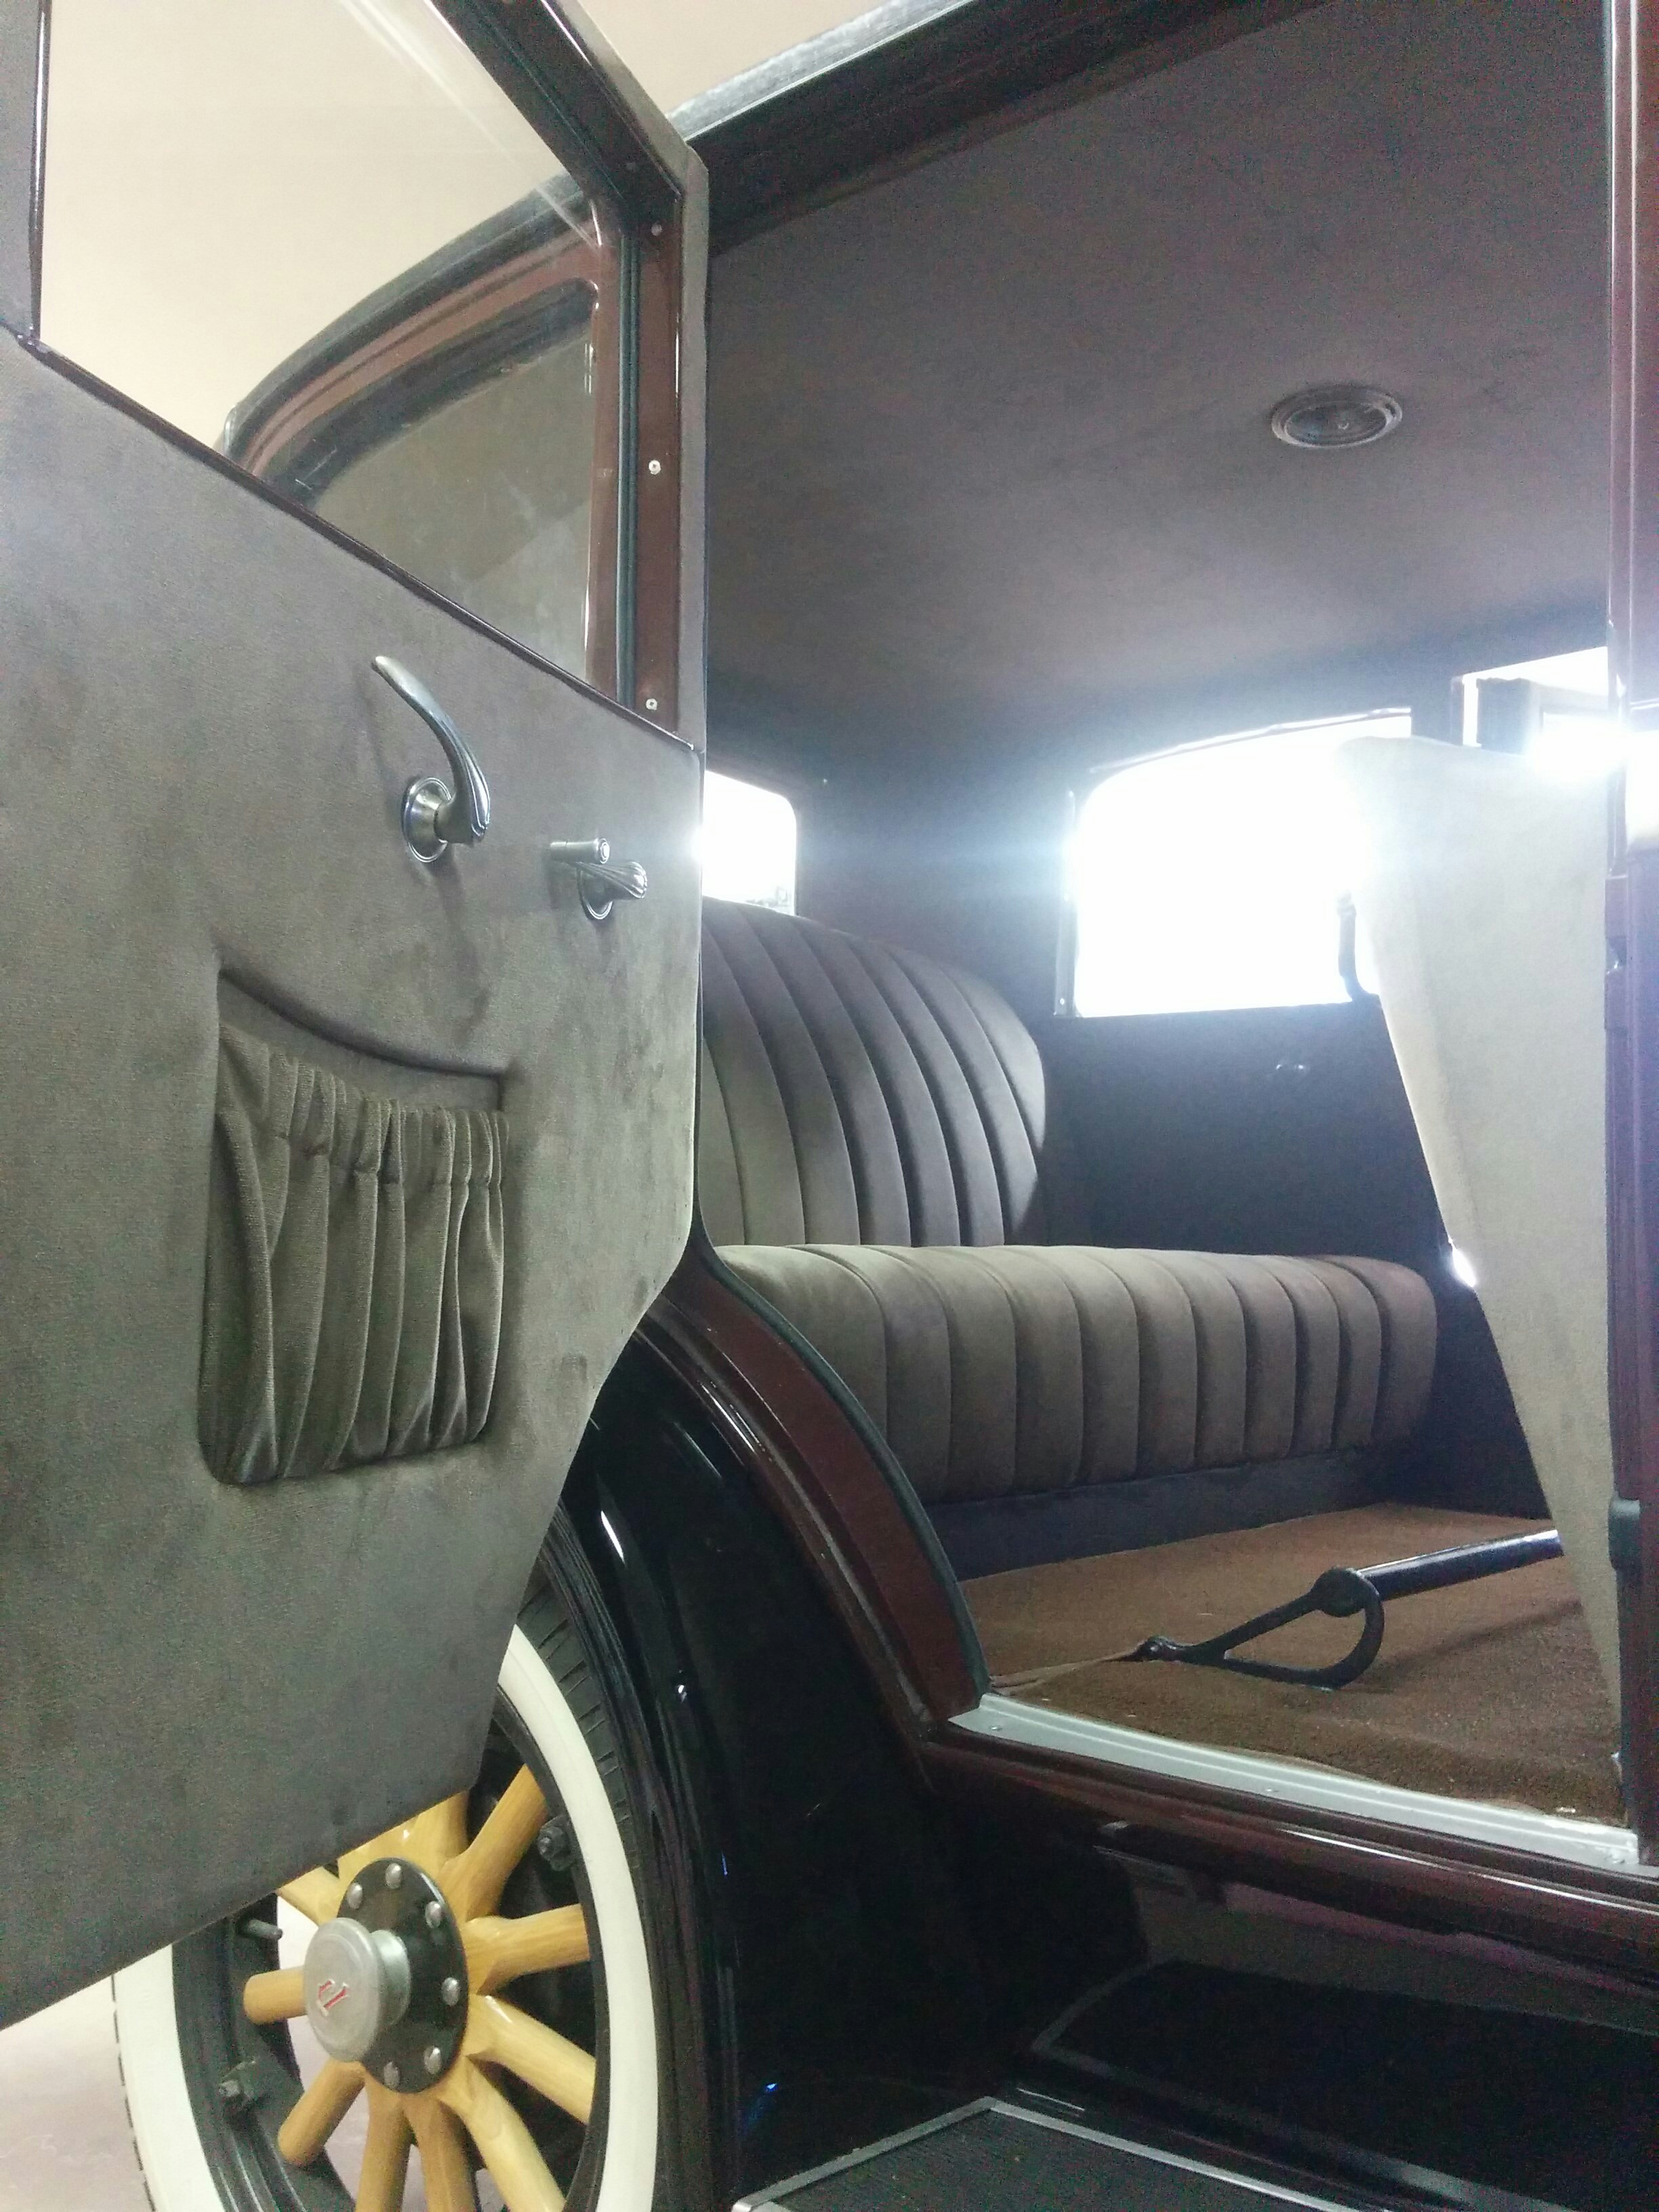 A close up of the detail work on those door panels and seats